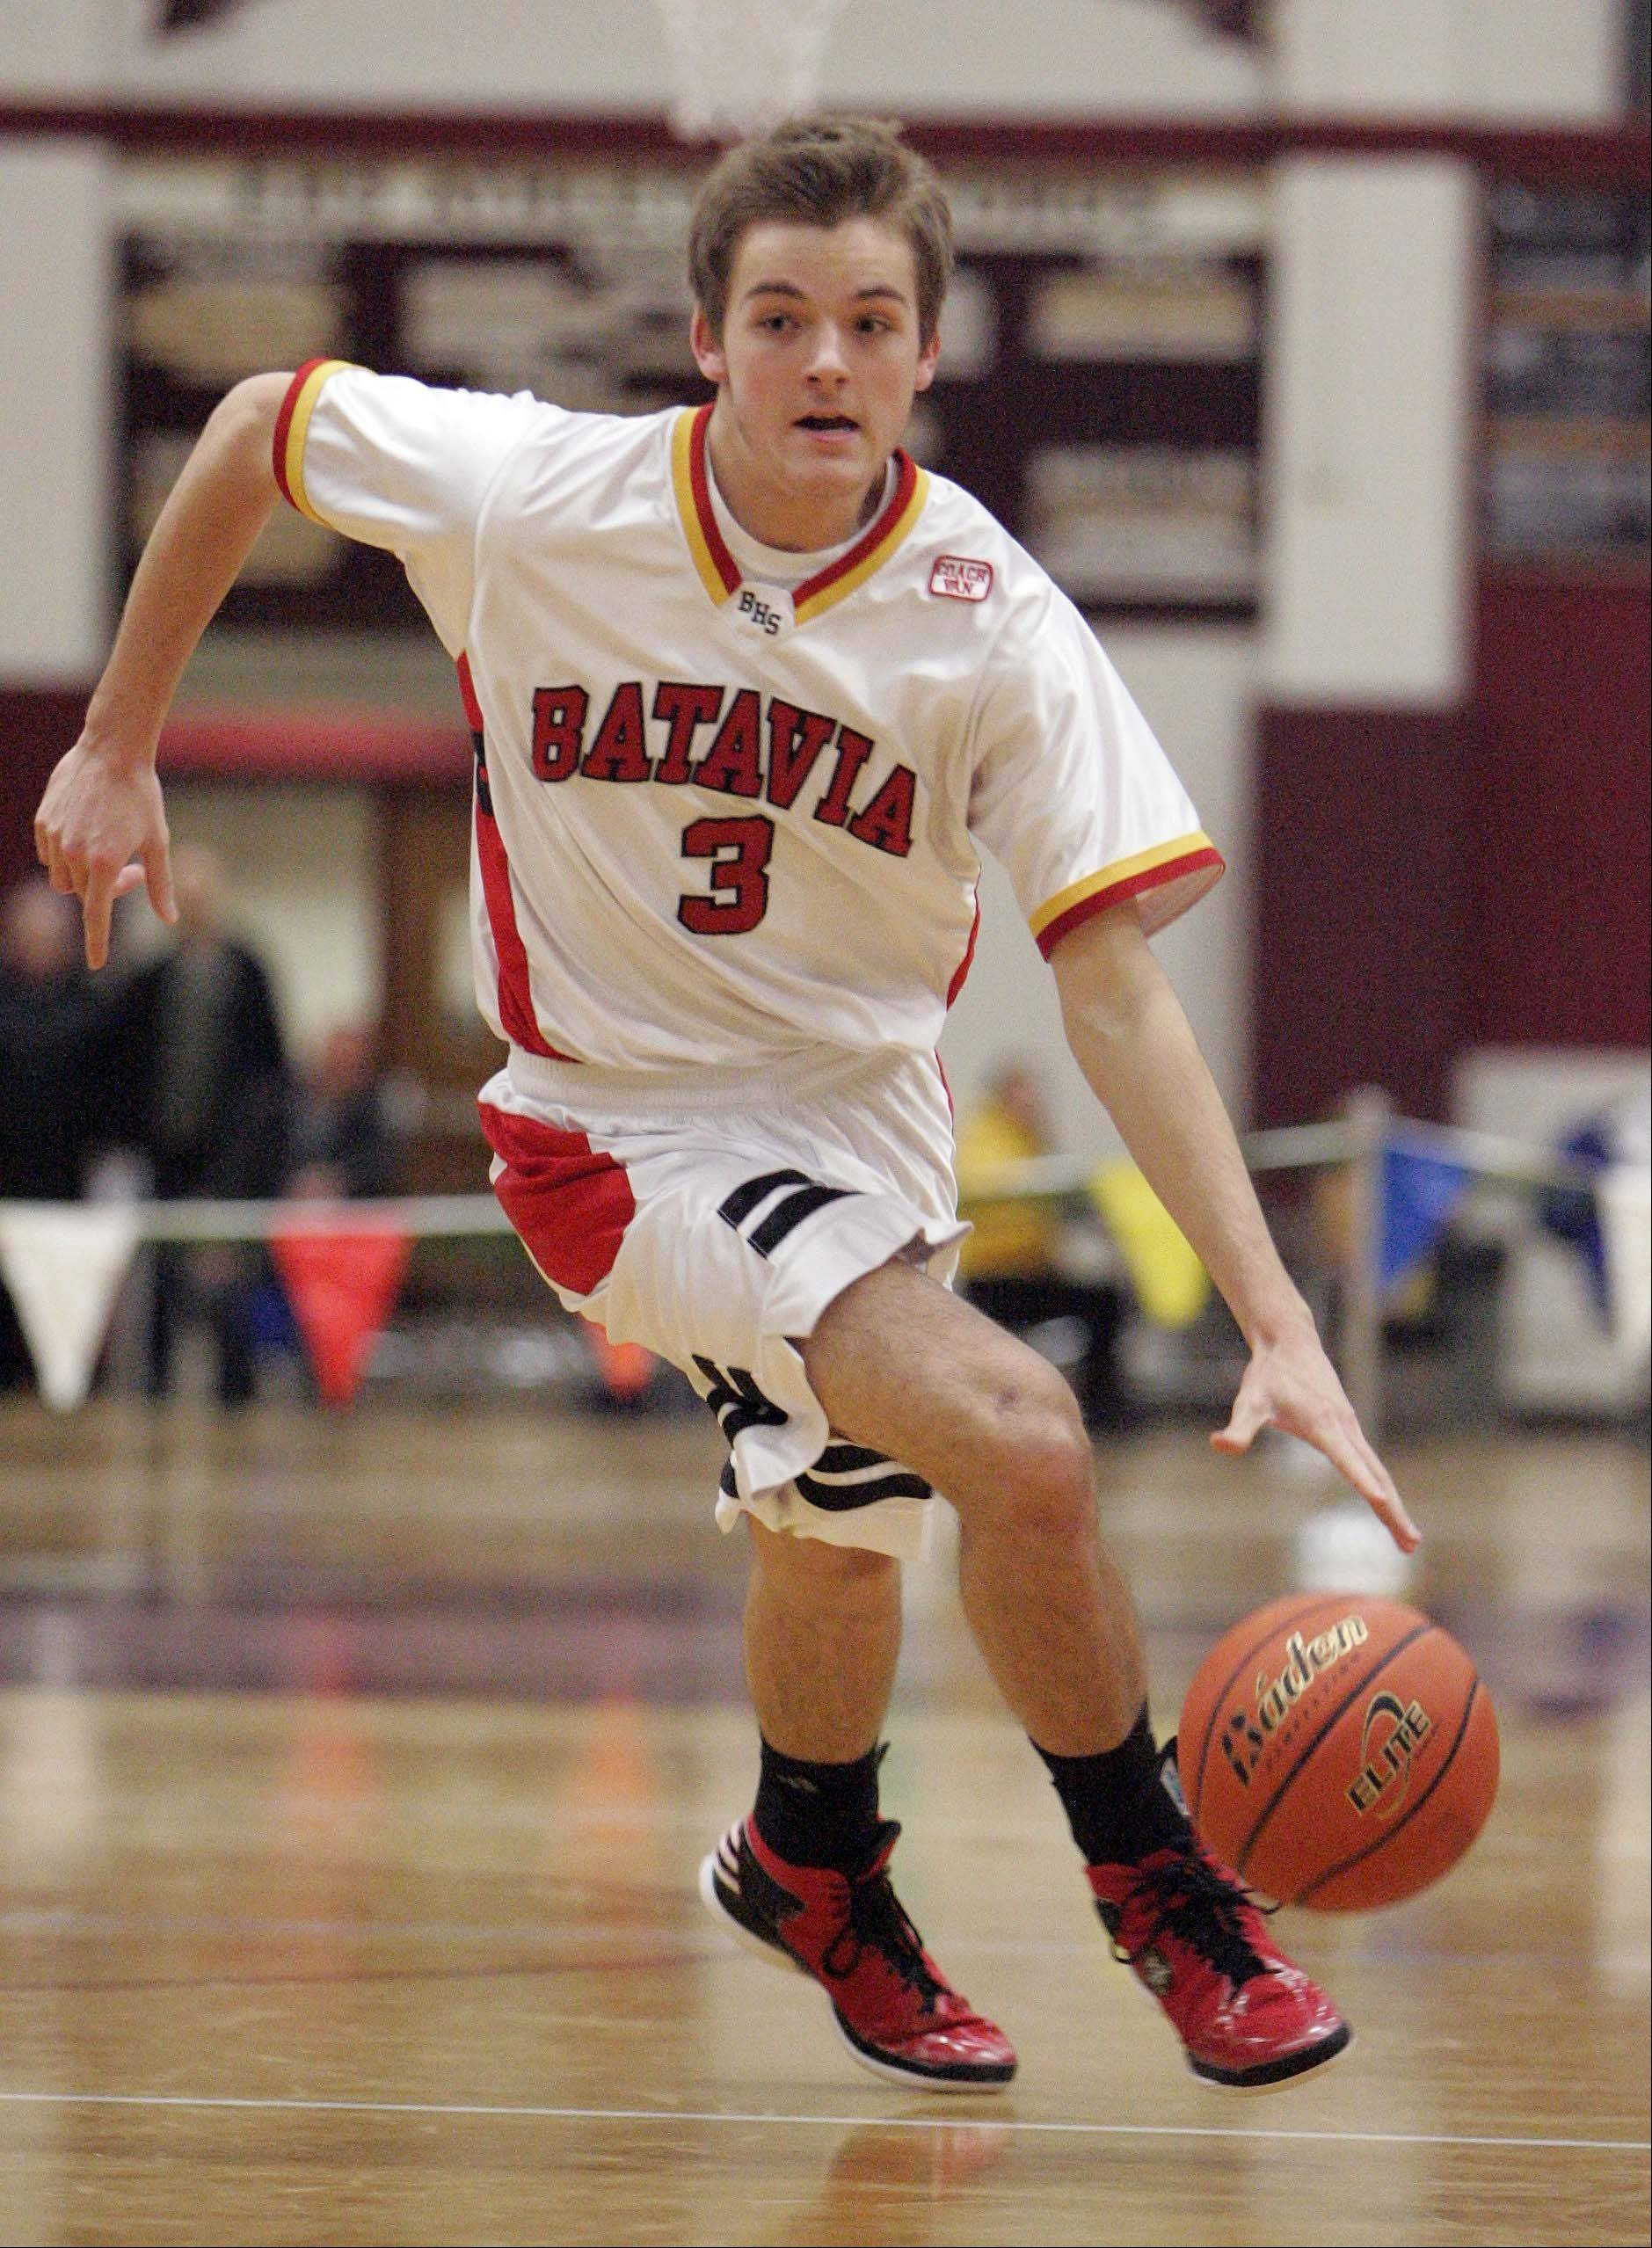 Batavia's Jake Pollack drives against Rockford East.